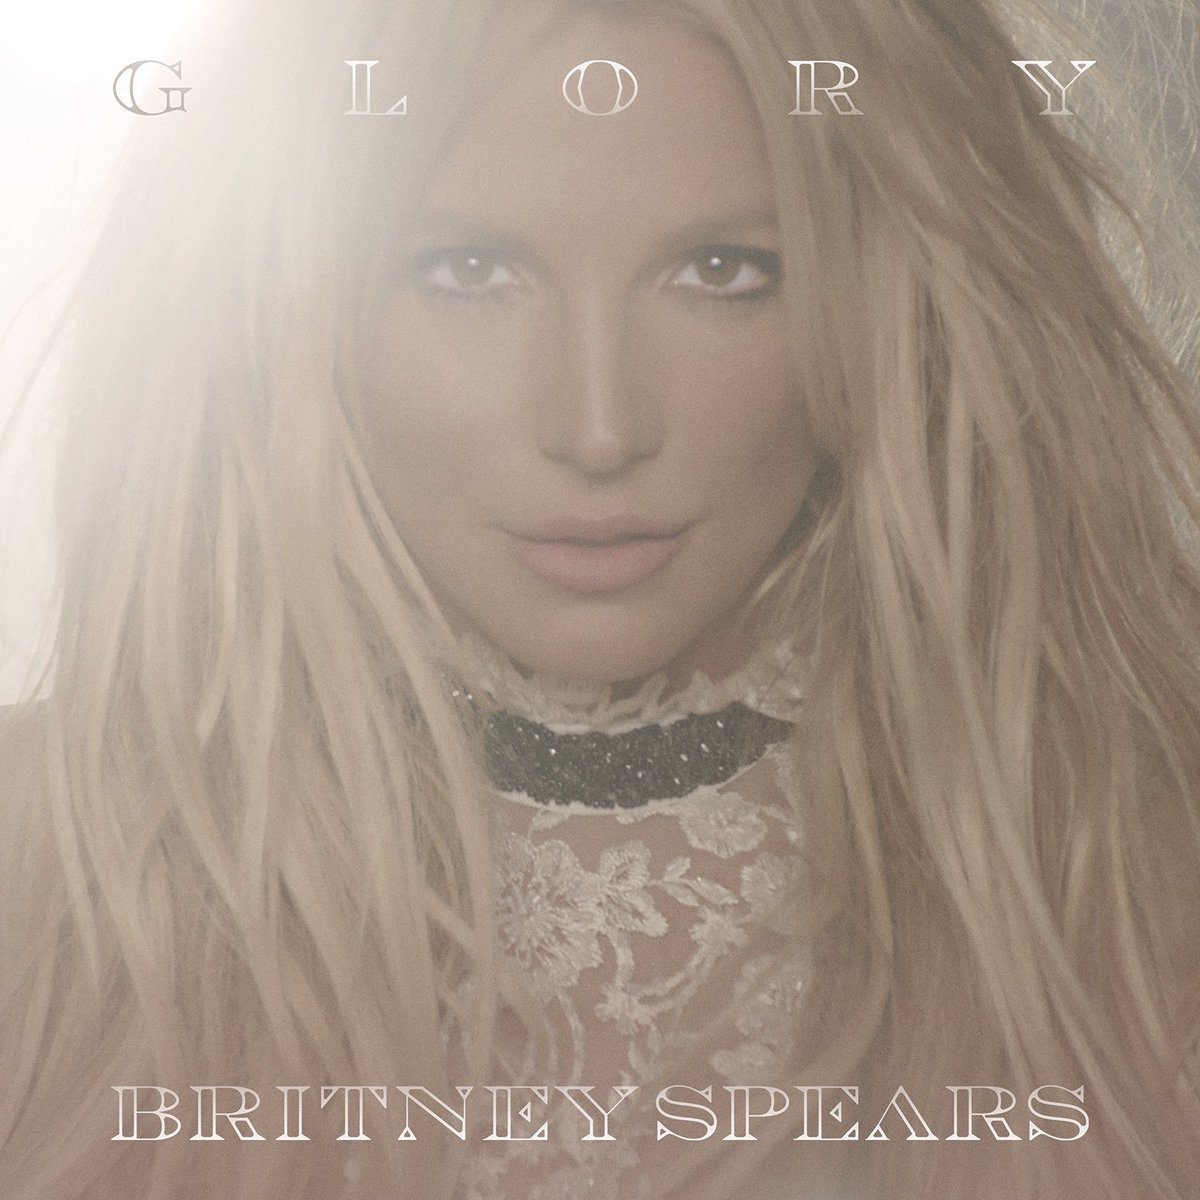 With #GLORY, @BritneySpears has made her most daring, mature album in years. https://t.co/o92iT6s3J9 https://t.co/02B8gdUvwJ